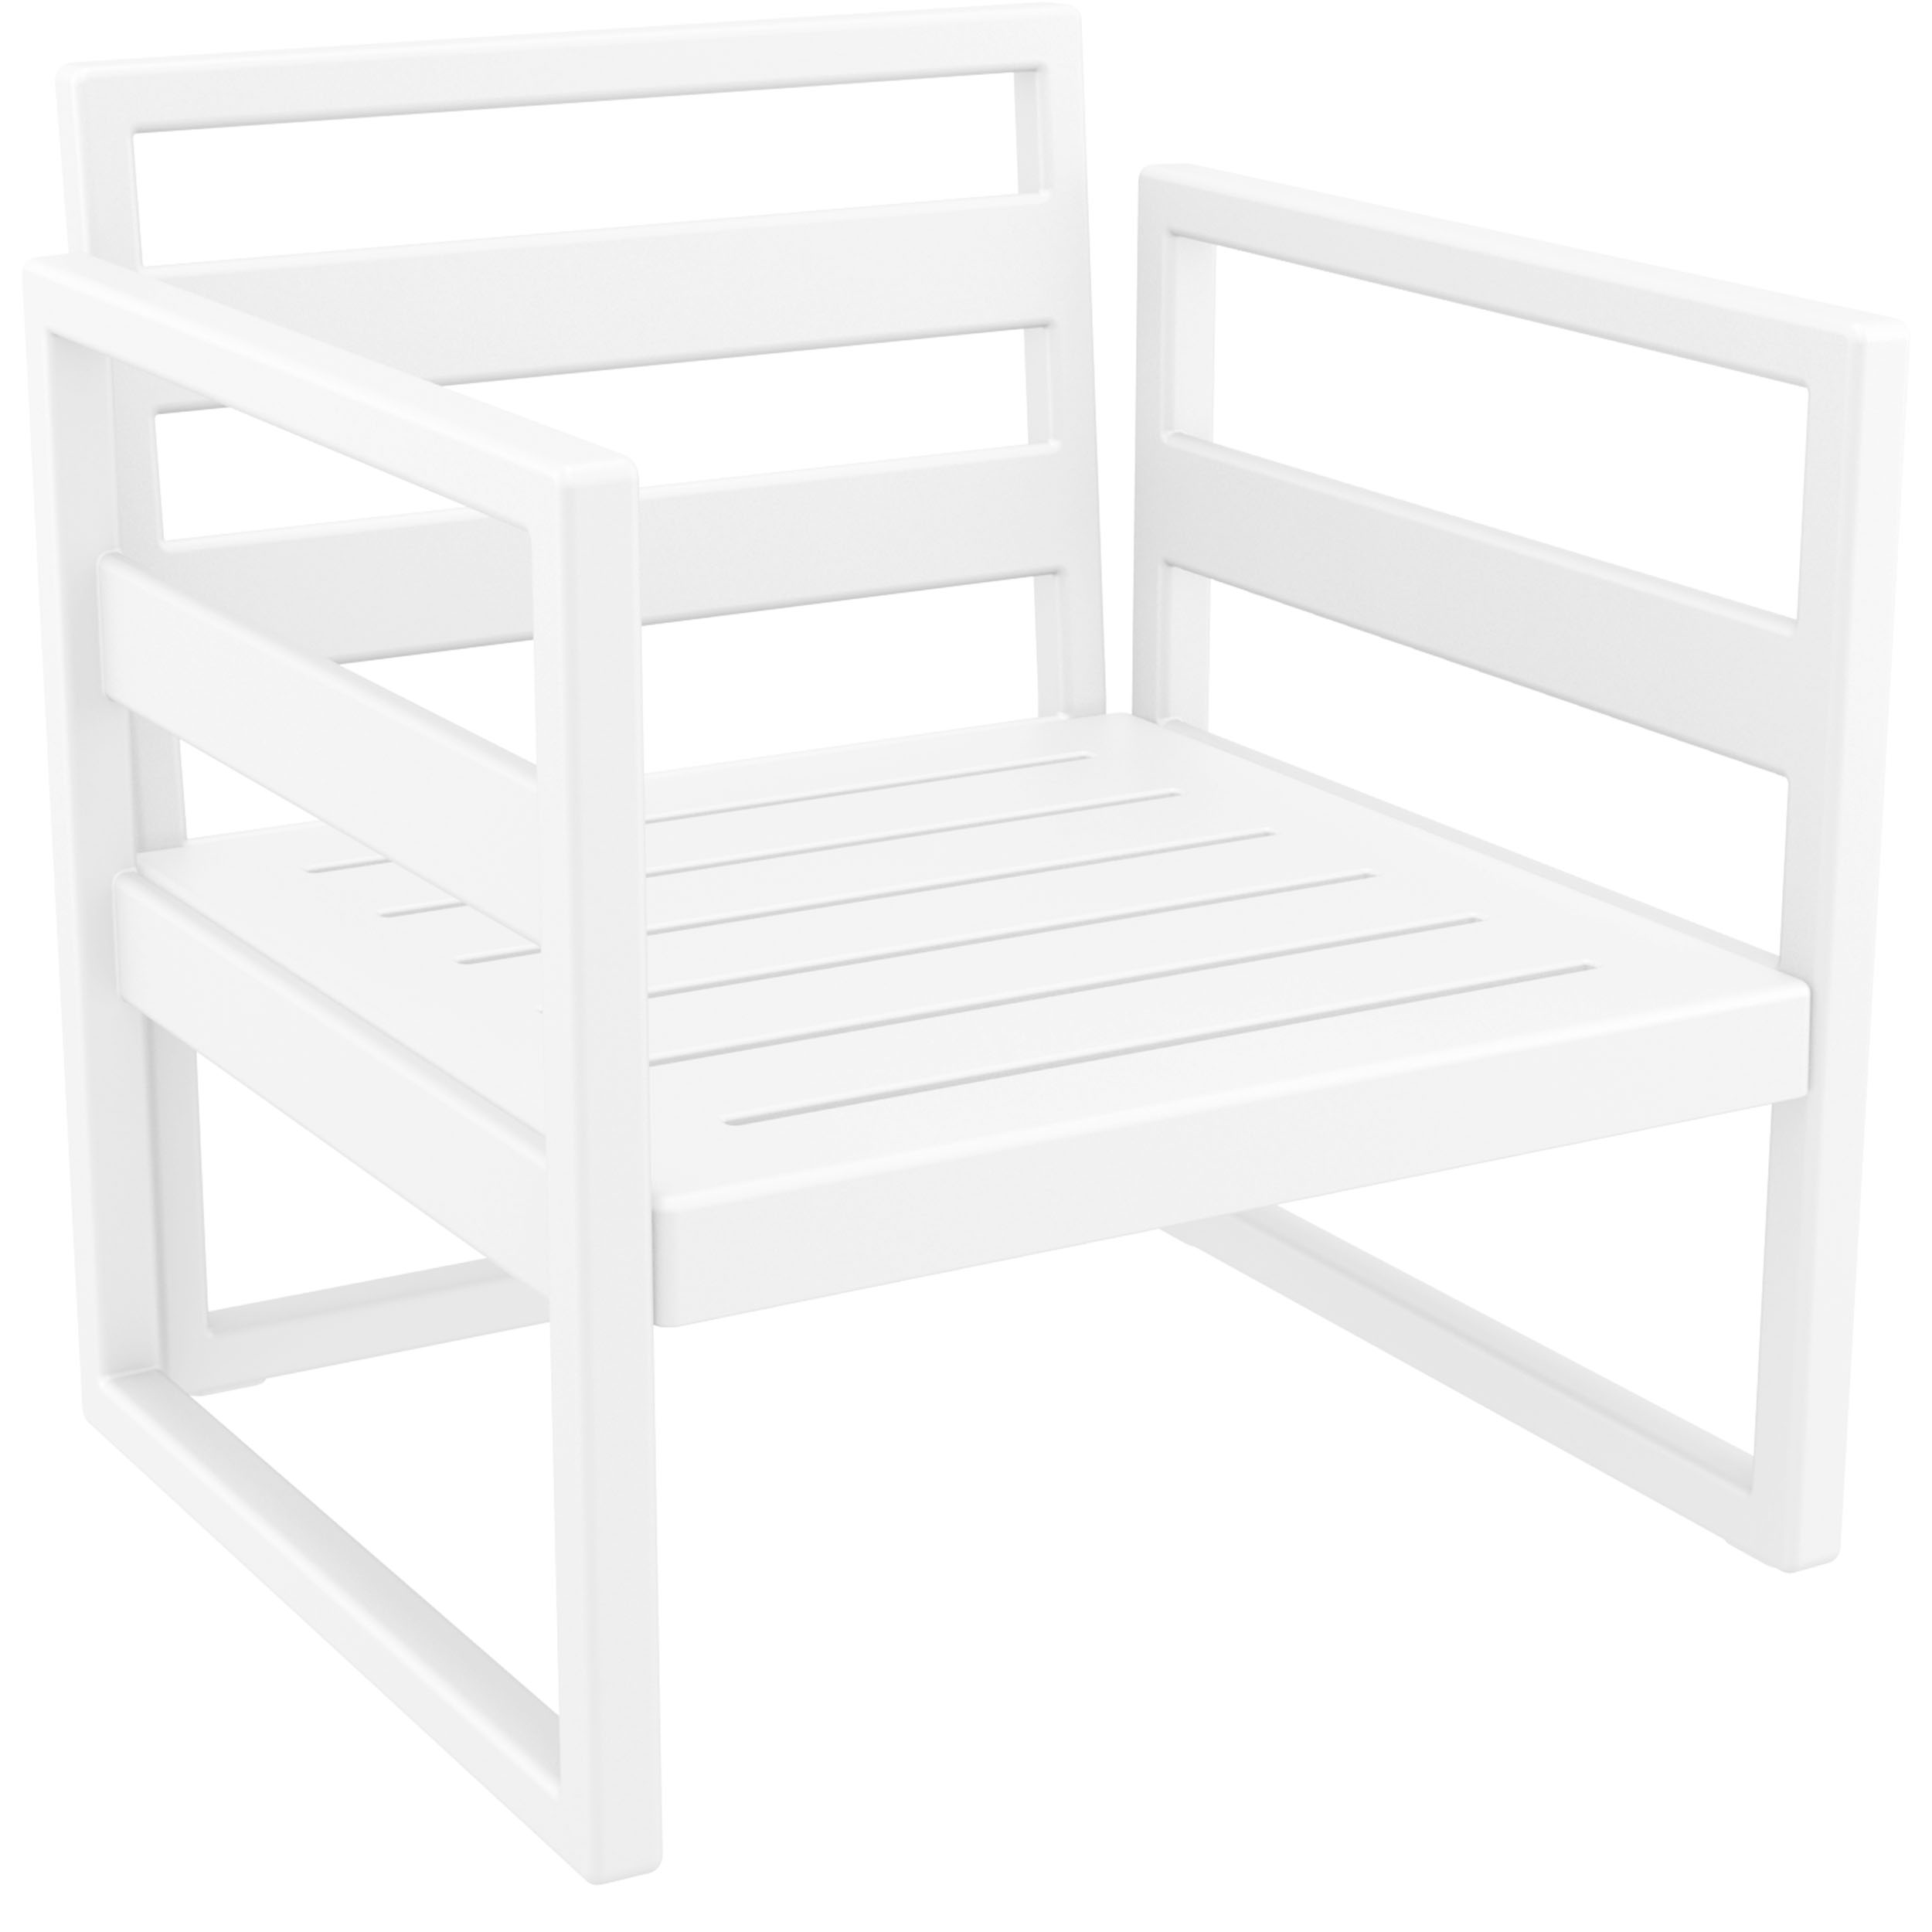 039 ml armchair white front side